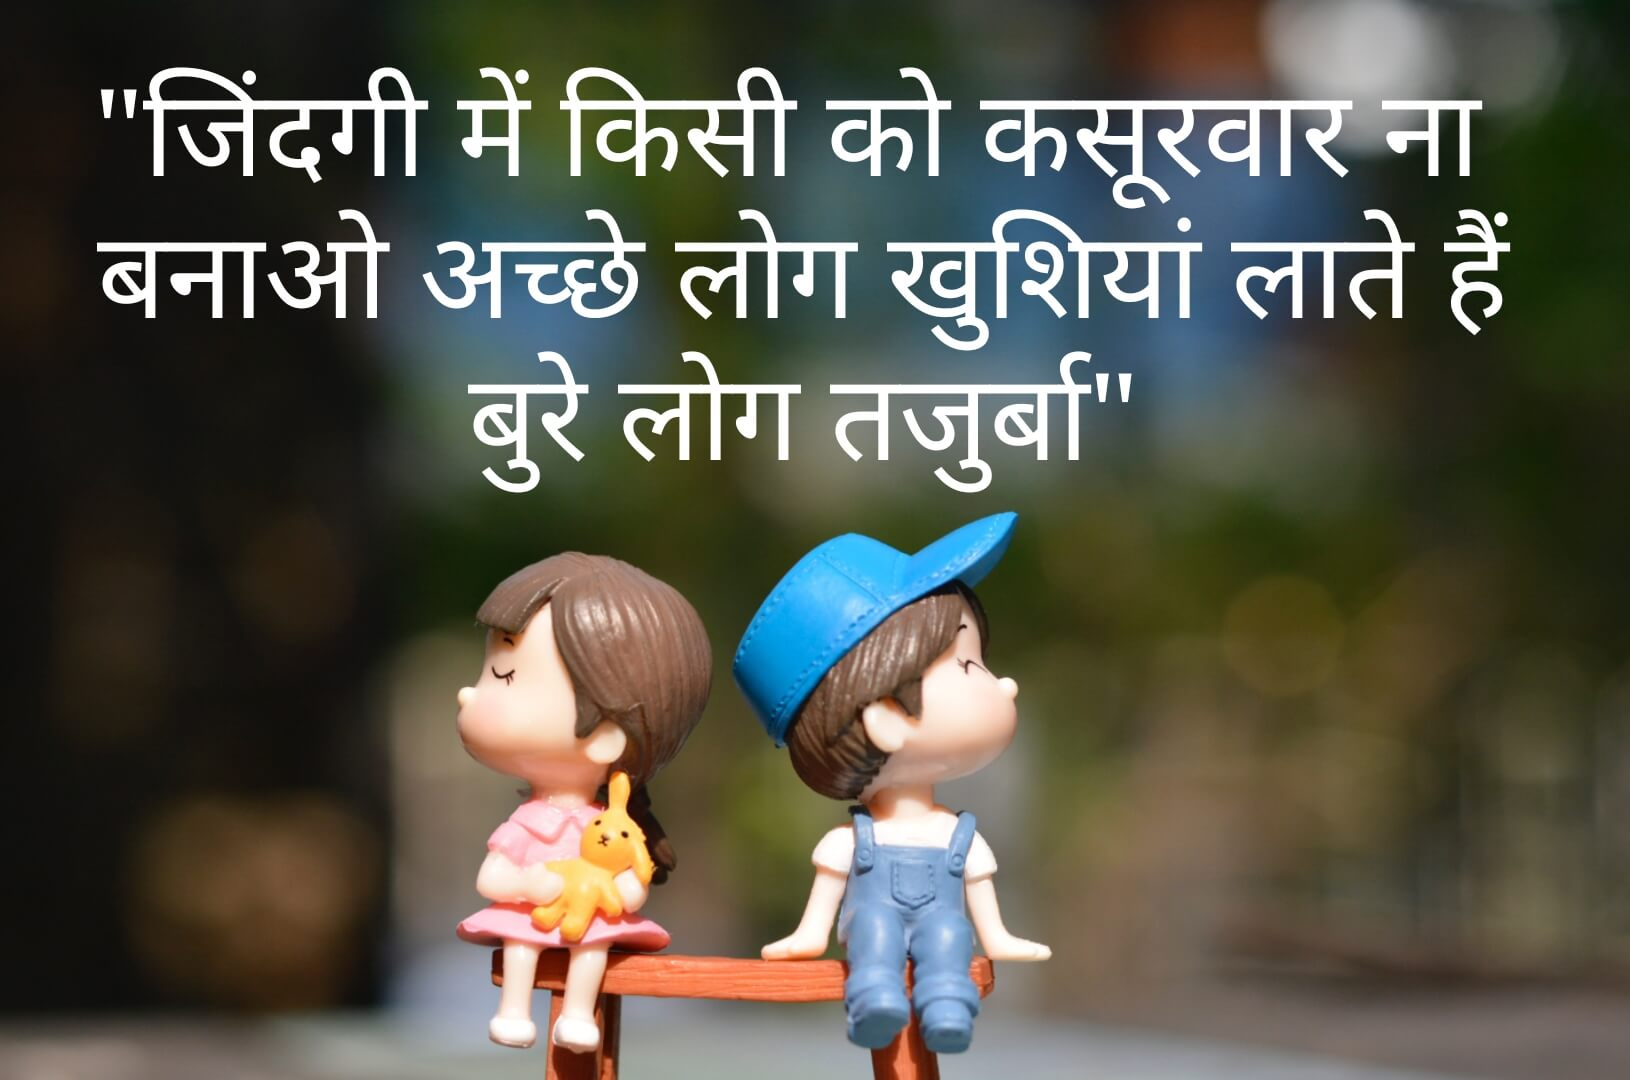 Motivational Life Shayari in Hindi Line